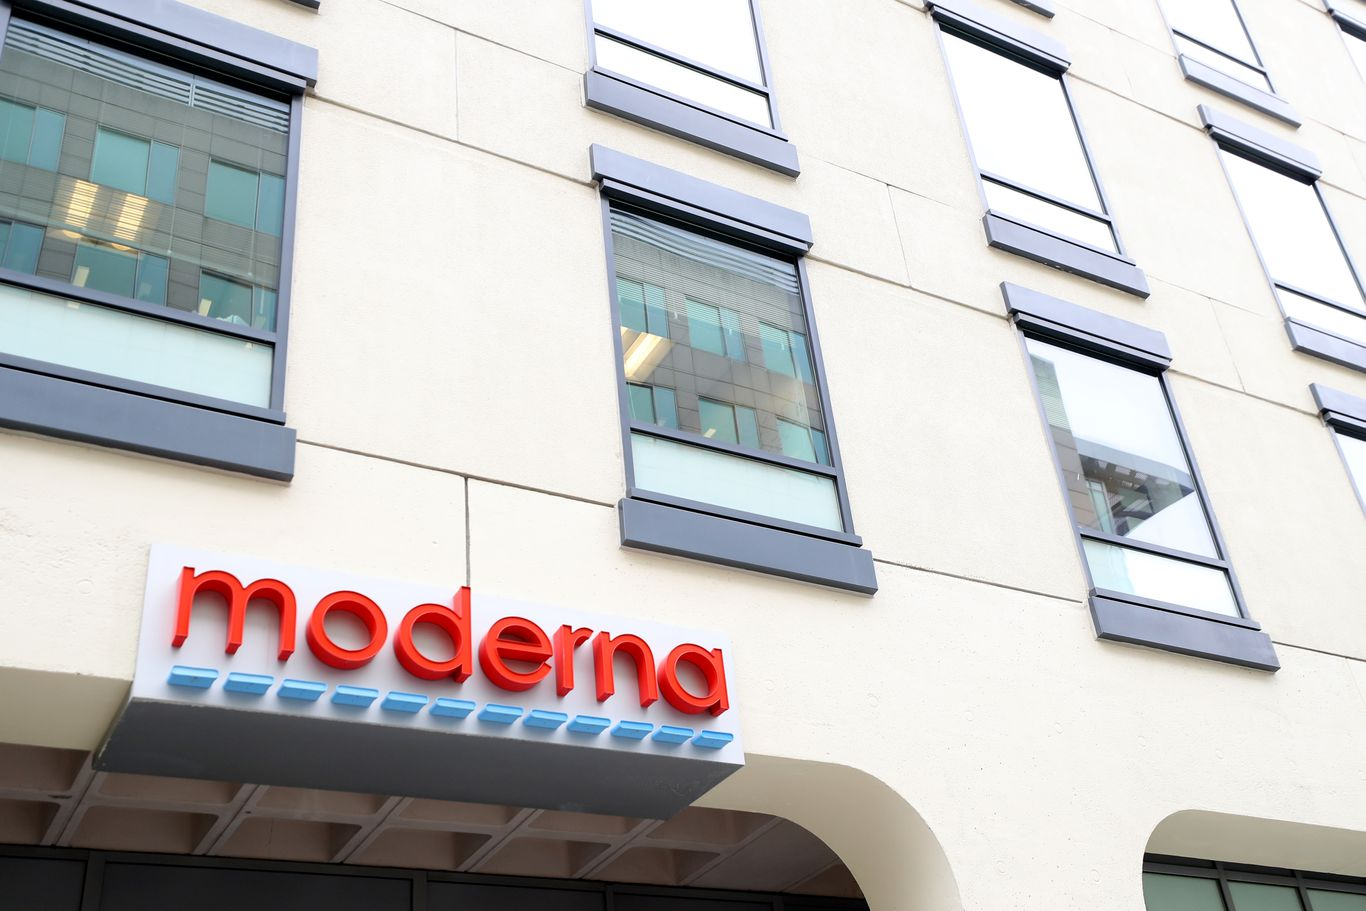 Moderna reveals it may not hold patent rights for coronavirus vaccine